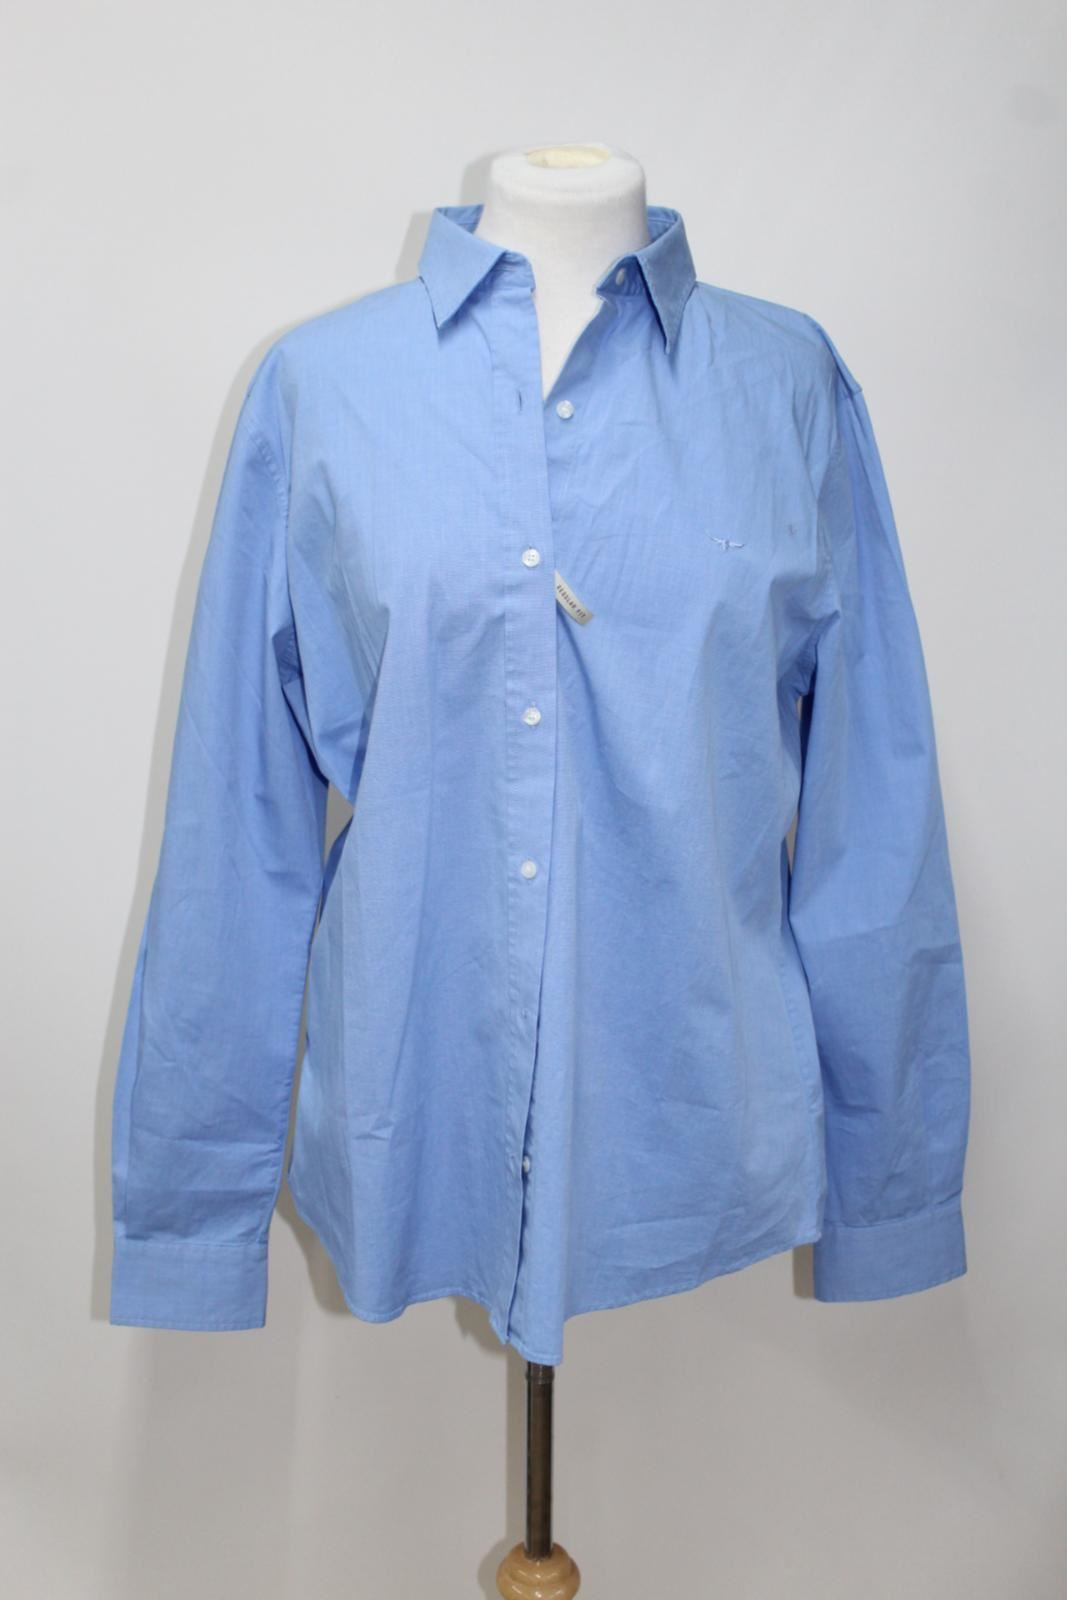 Nicole Cotton Shirt Uk16 Williams Ladies Stretch Blue R Bnwt m Cornflower q4w6I7